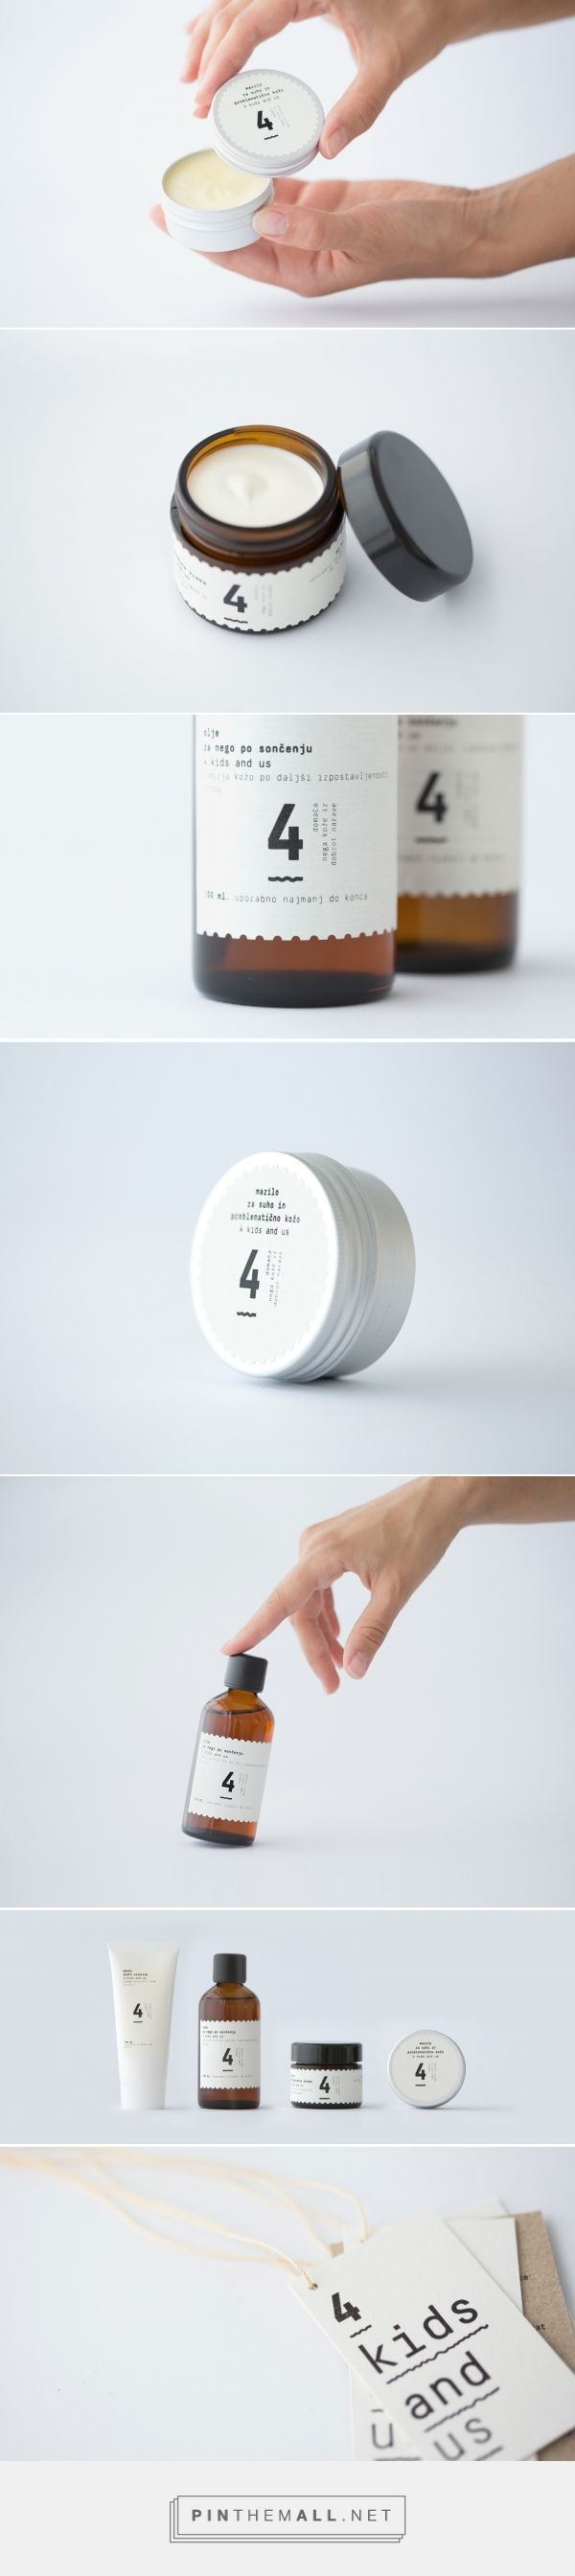 4 Kids And Us - Packaging of the World - Creative Package Design Gallery - http://www.packagingoftheworld.com/2017/08/4-kids-and-us.html - created via https://pinthemall.net